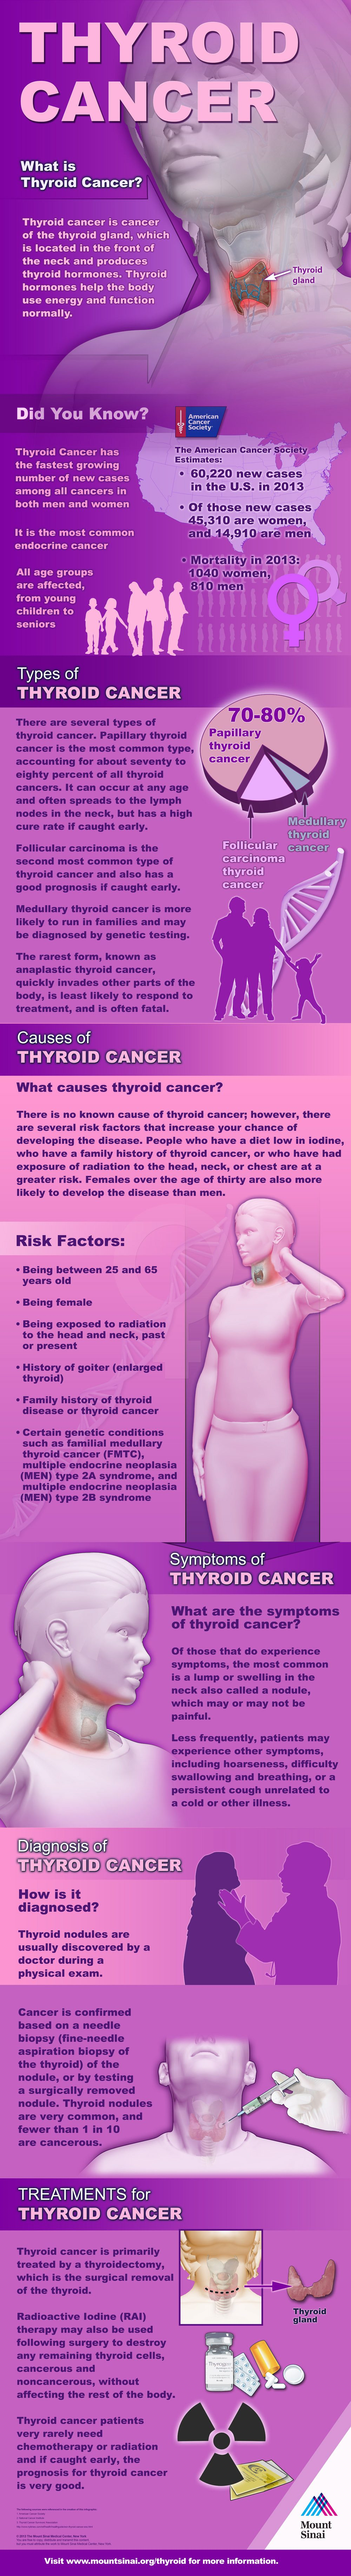 thyroid cancer infolg